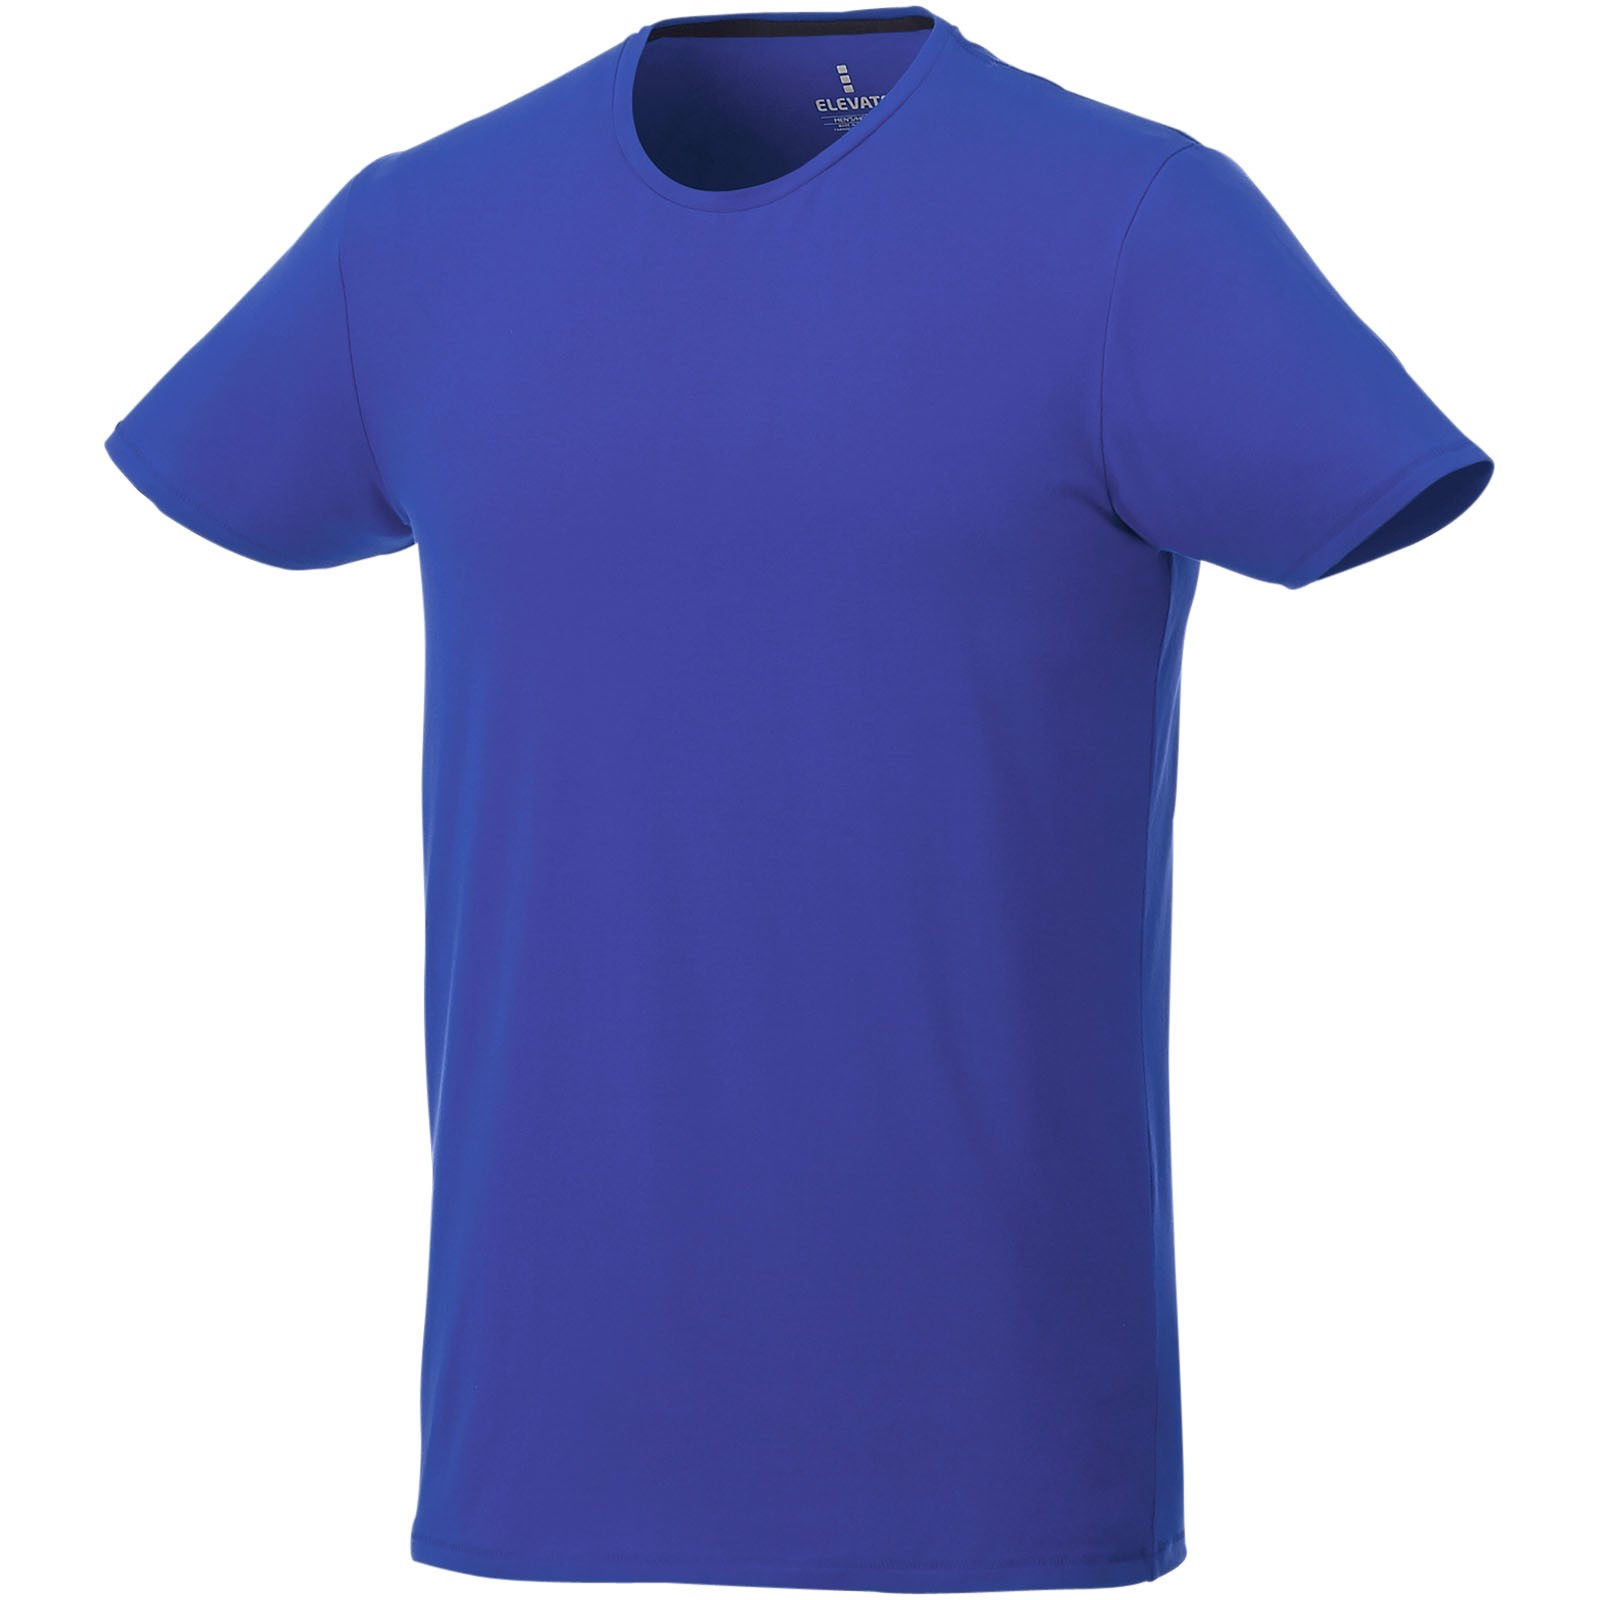 Balfour short sleeve men's GOTS organic t-shirt - Blue / XS